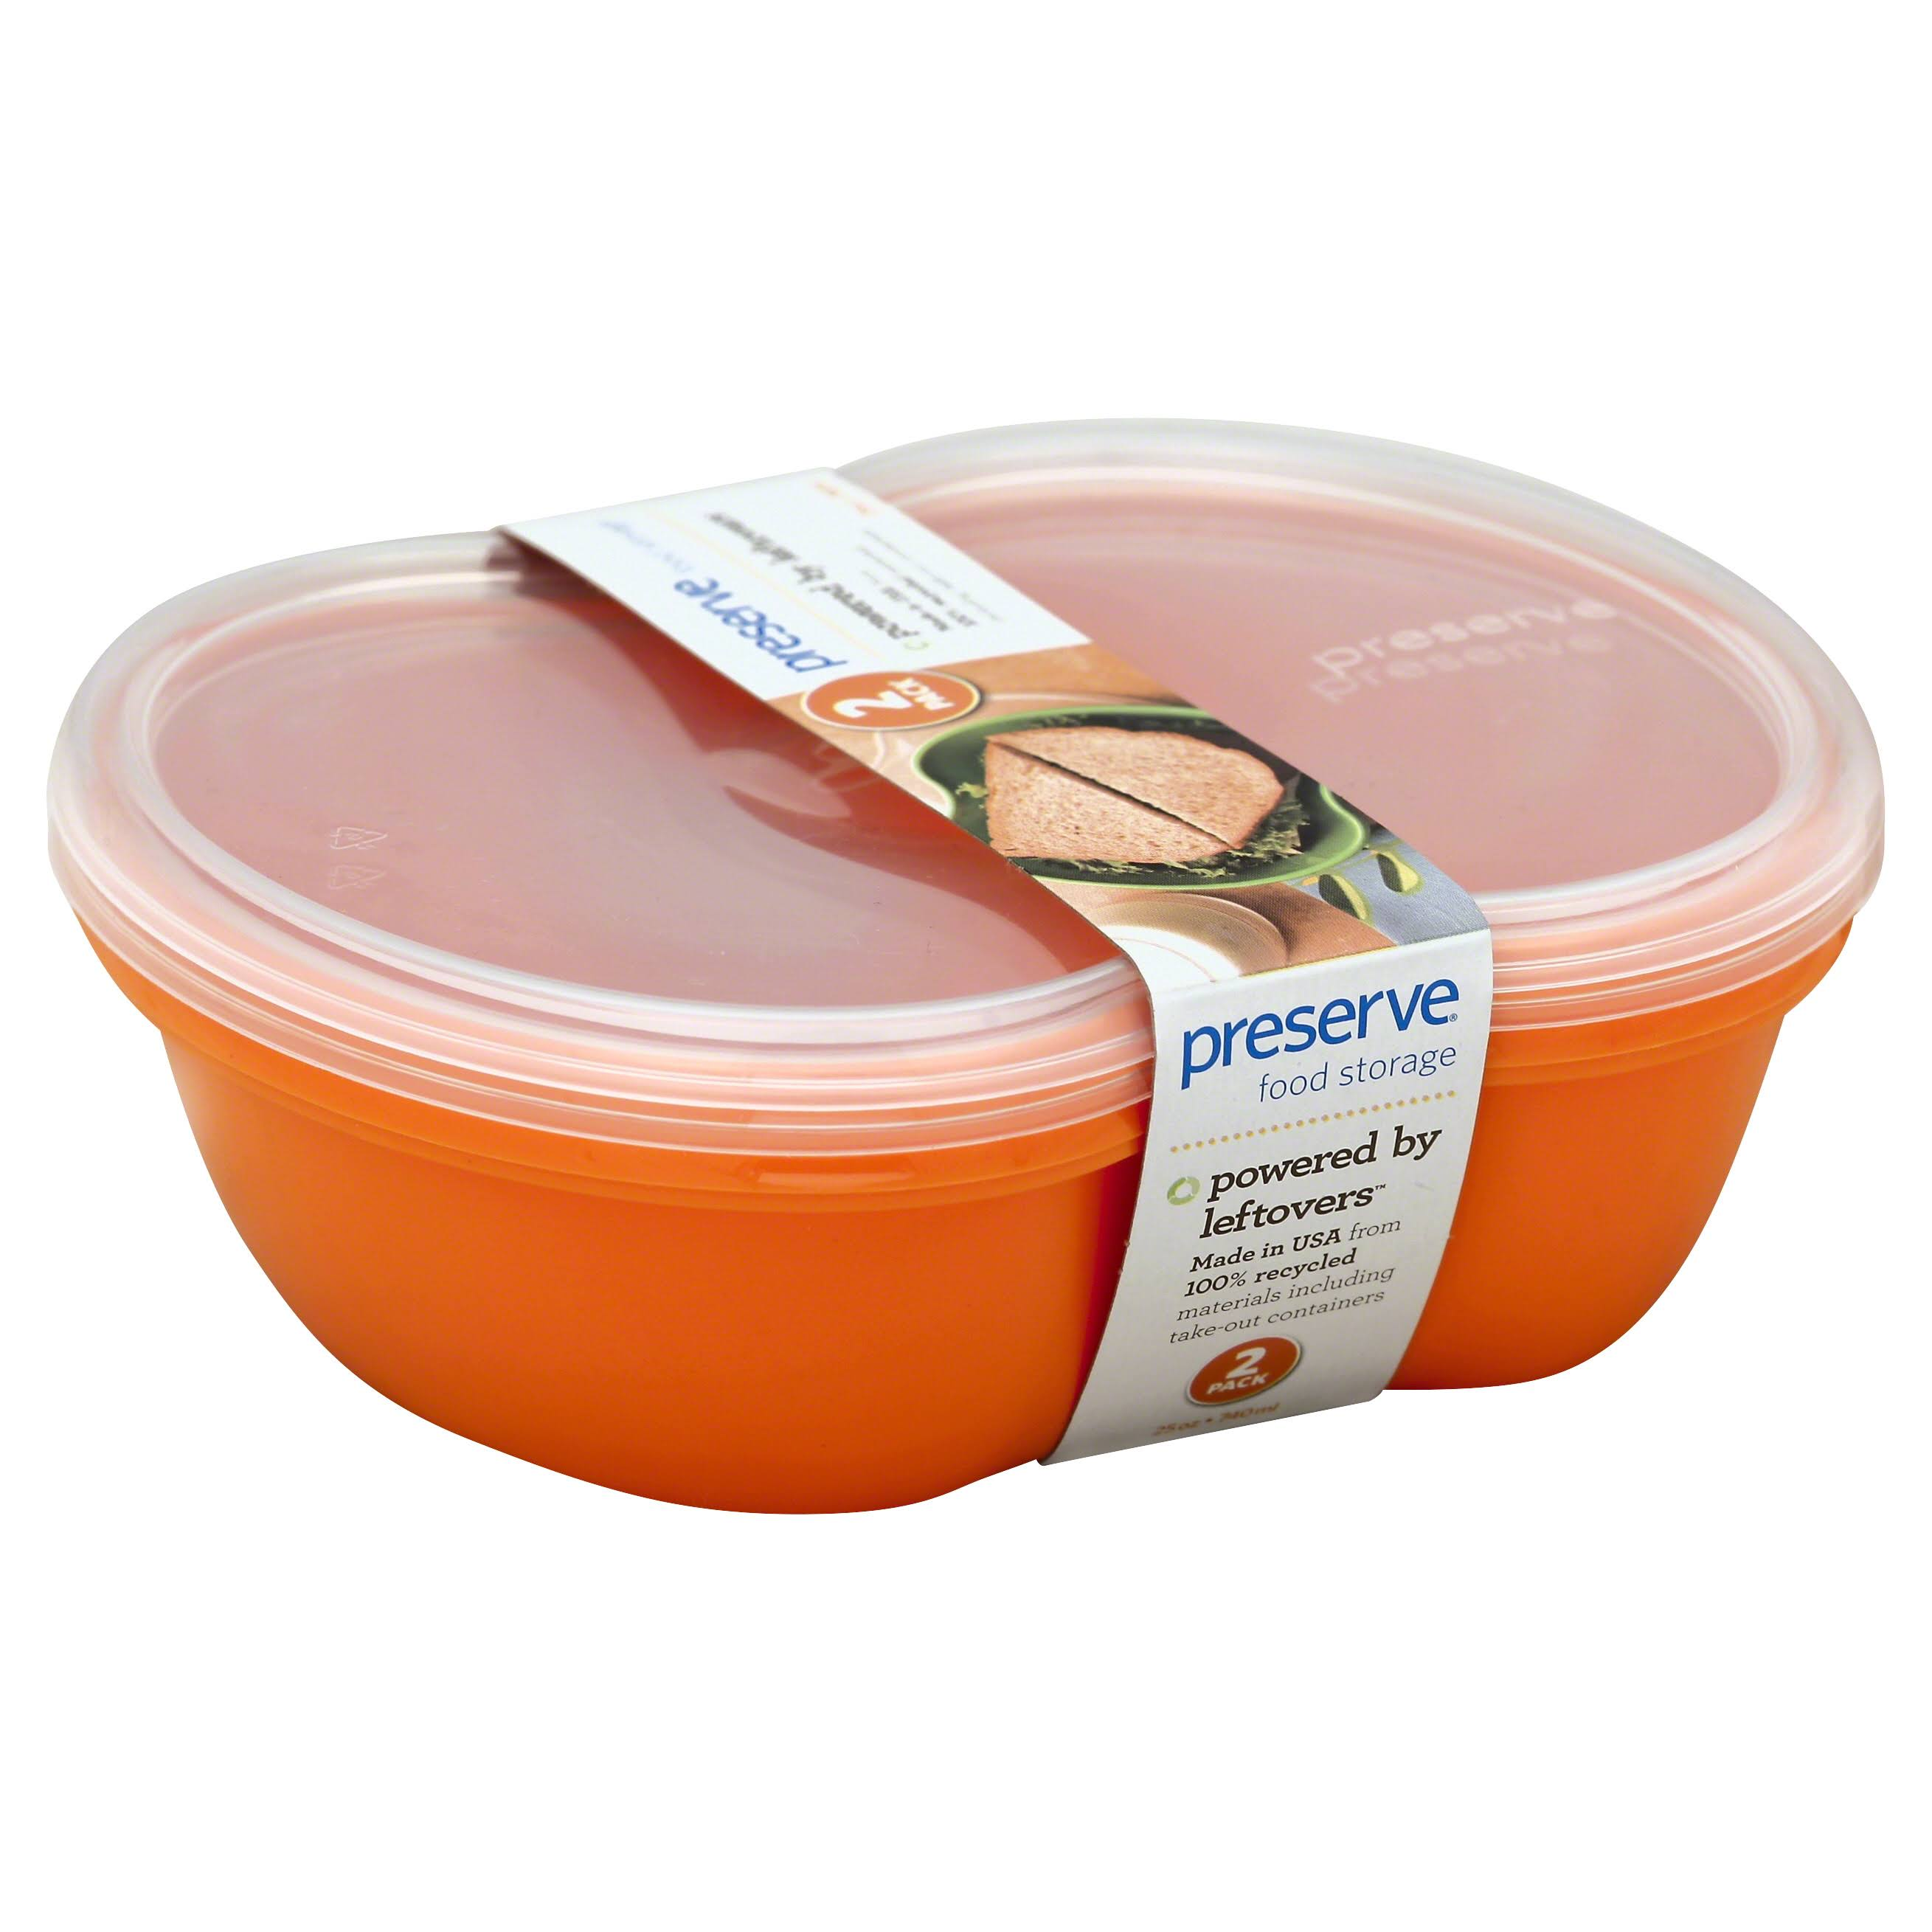 Preserve Square Food Storage Container Made from Recycled Plastic - Orange, 740ml, 2pk